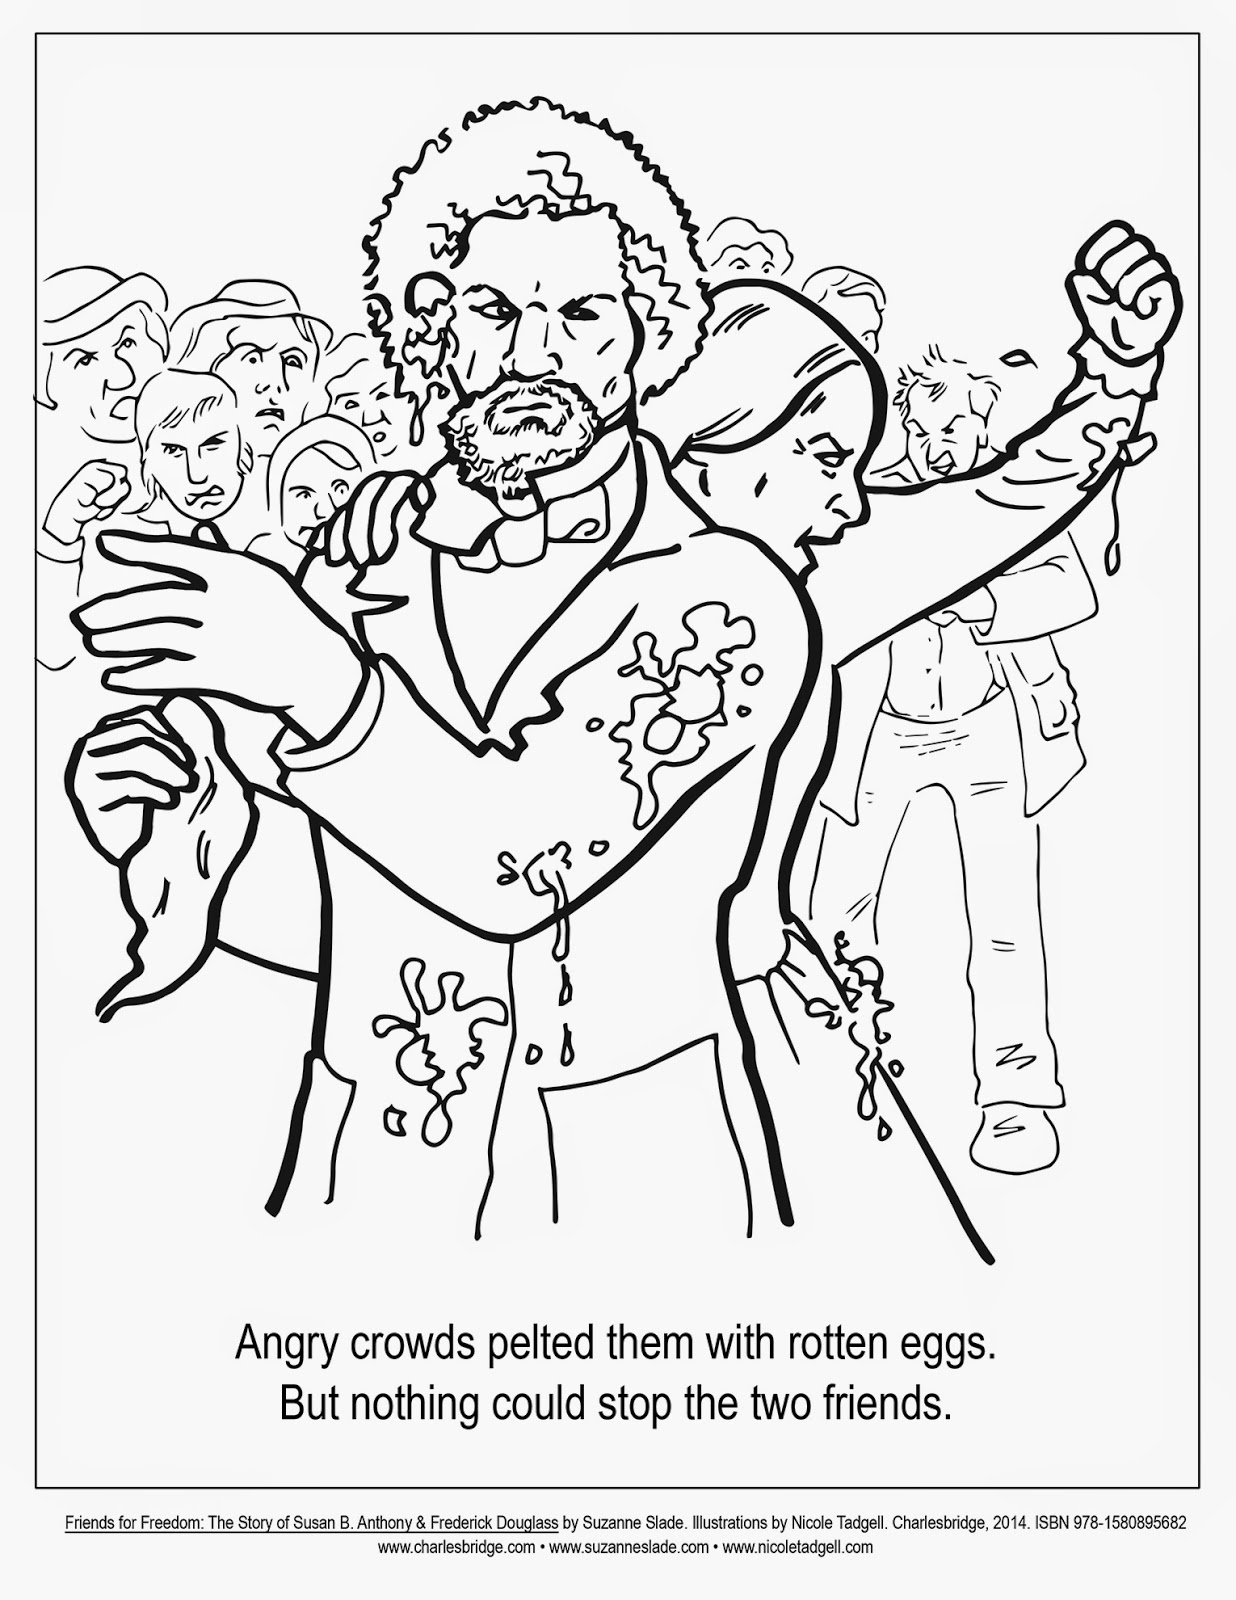 Nicole Tadgell Illustration: Coloring Pages for Friends for Freedom!